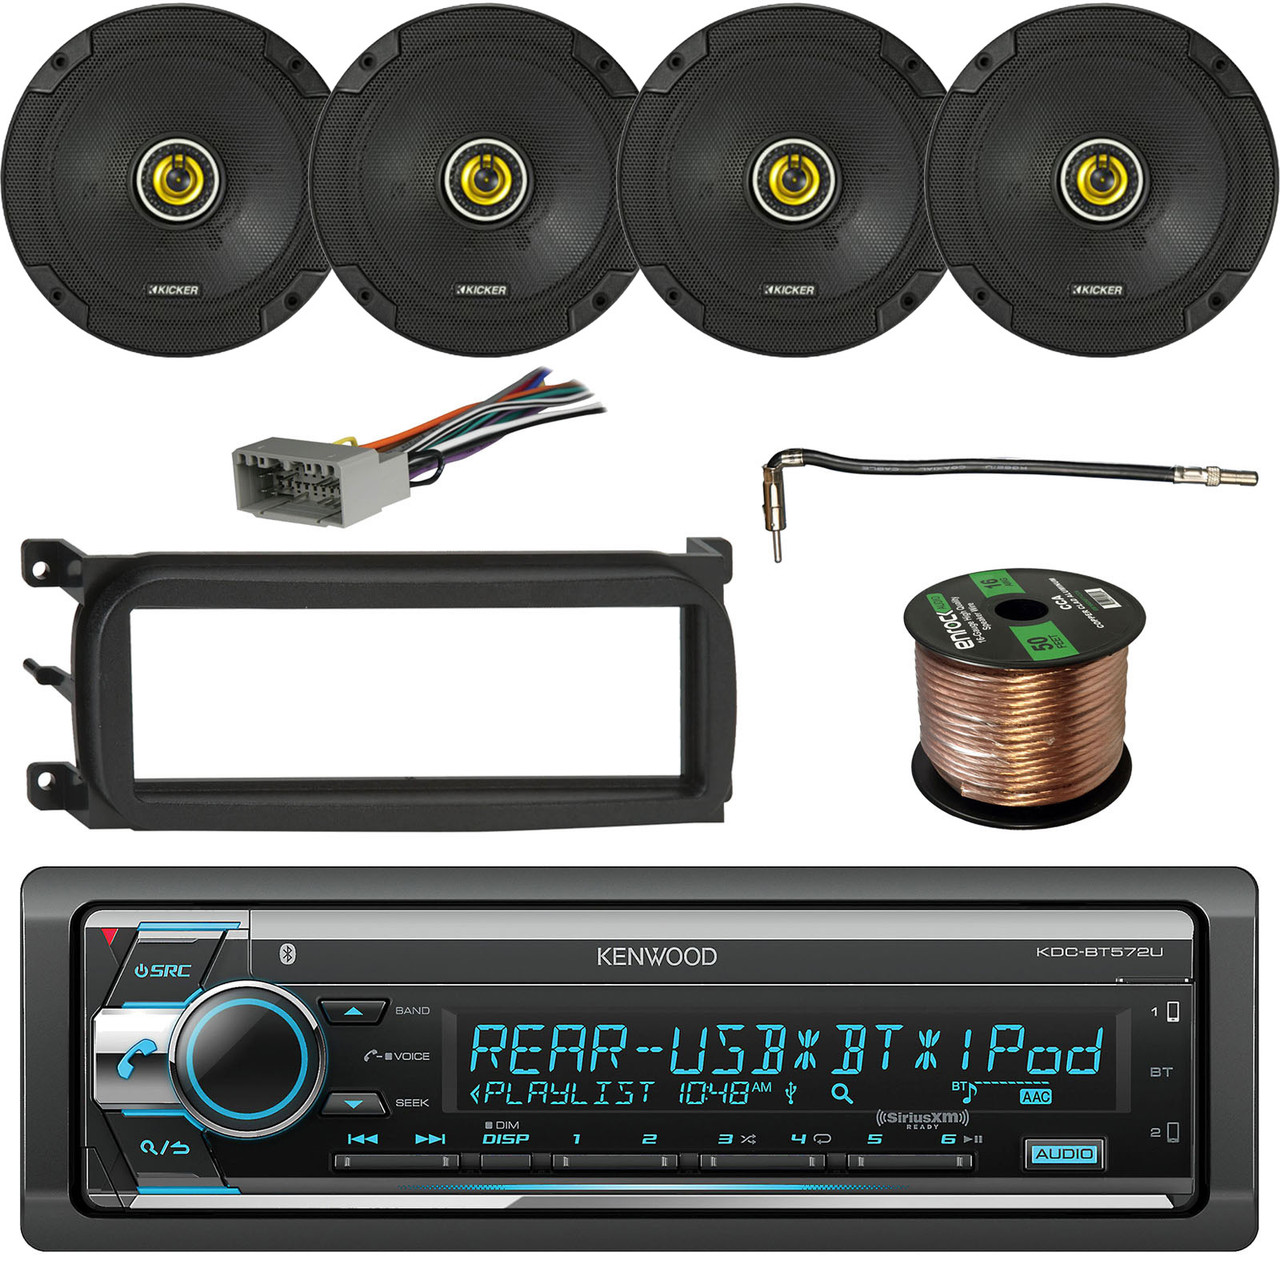 medium resolution of kenwood stereo receiver bluetooth w kicker 600w speakers 2 pairs enrock single din dash kit for chry dodge jeep metra chrysler antenna adapter cable